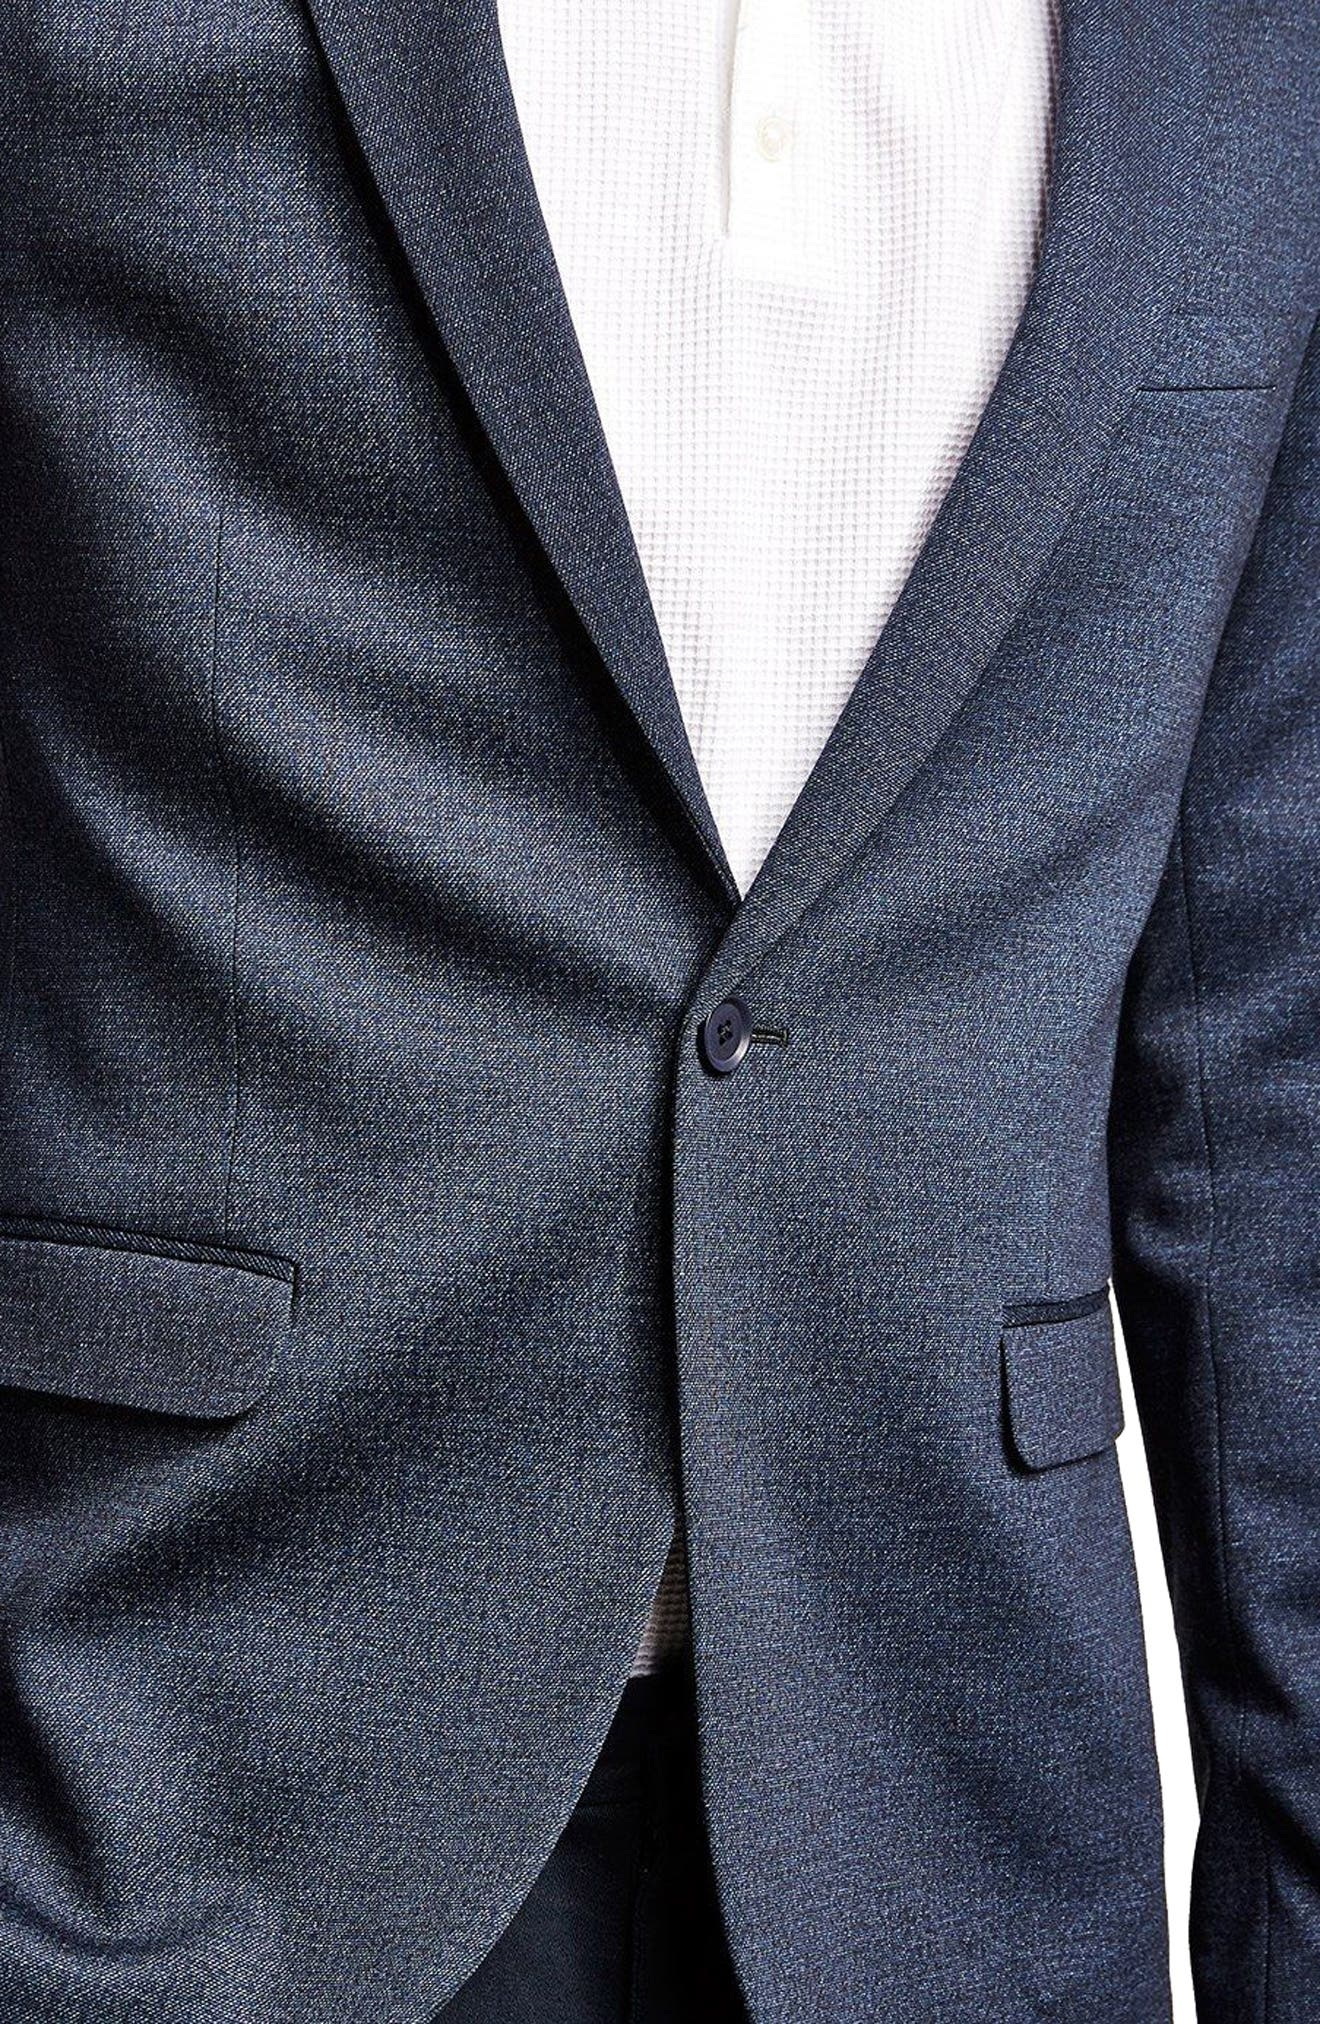 Classic Fit Sport Coat,                             Alternate thumbnail 3, color,                             DARK BLUE